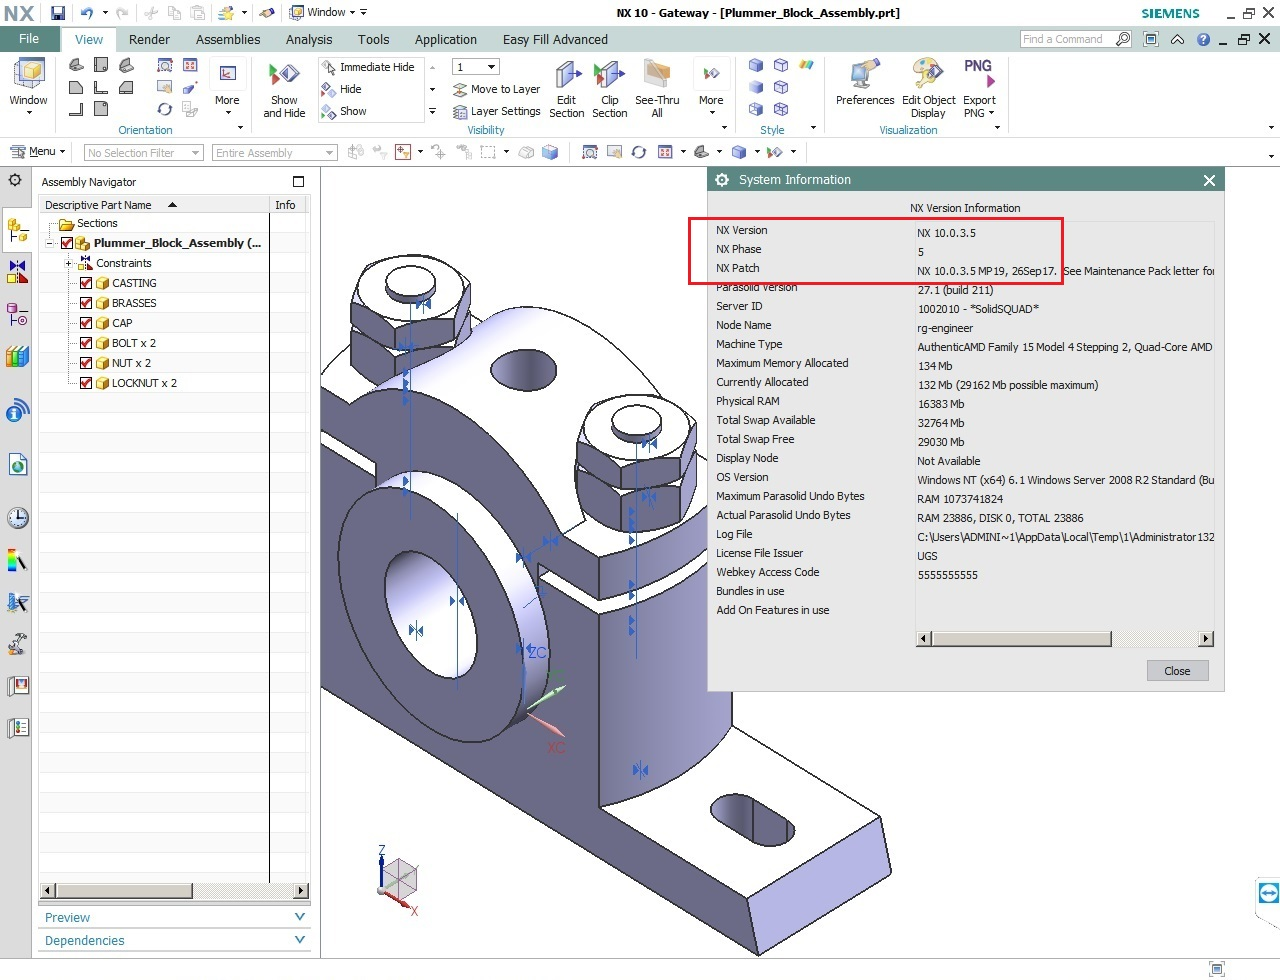 Siemens PLM NX 10.0.3 MP19 Update